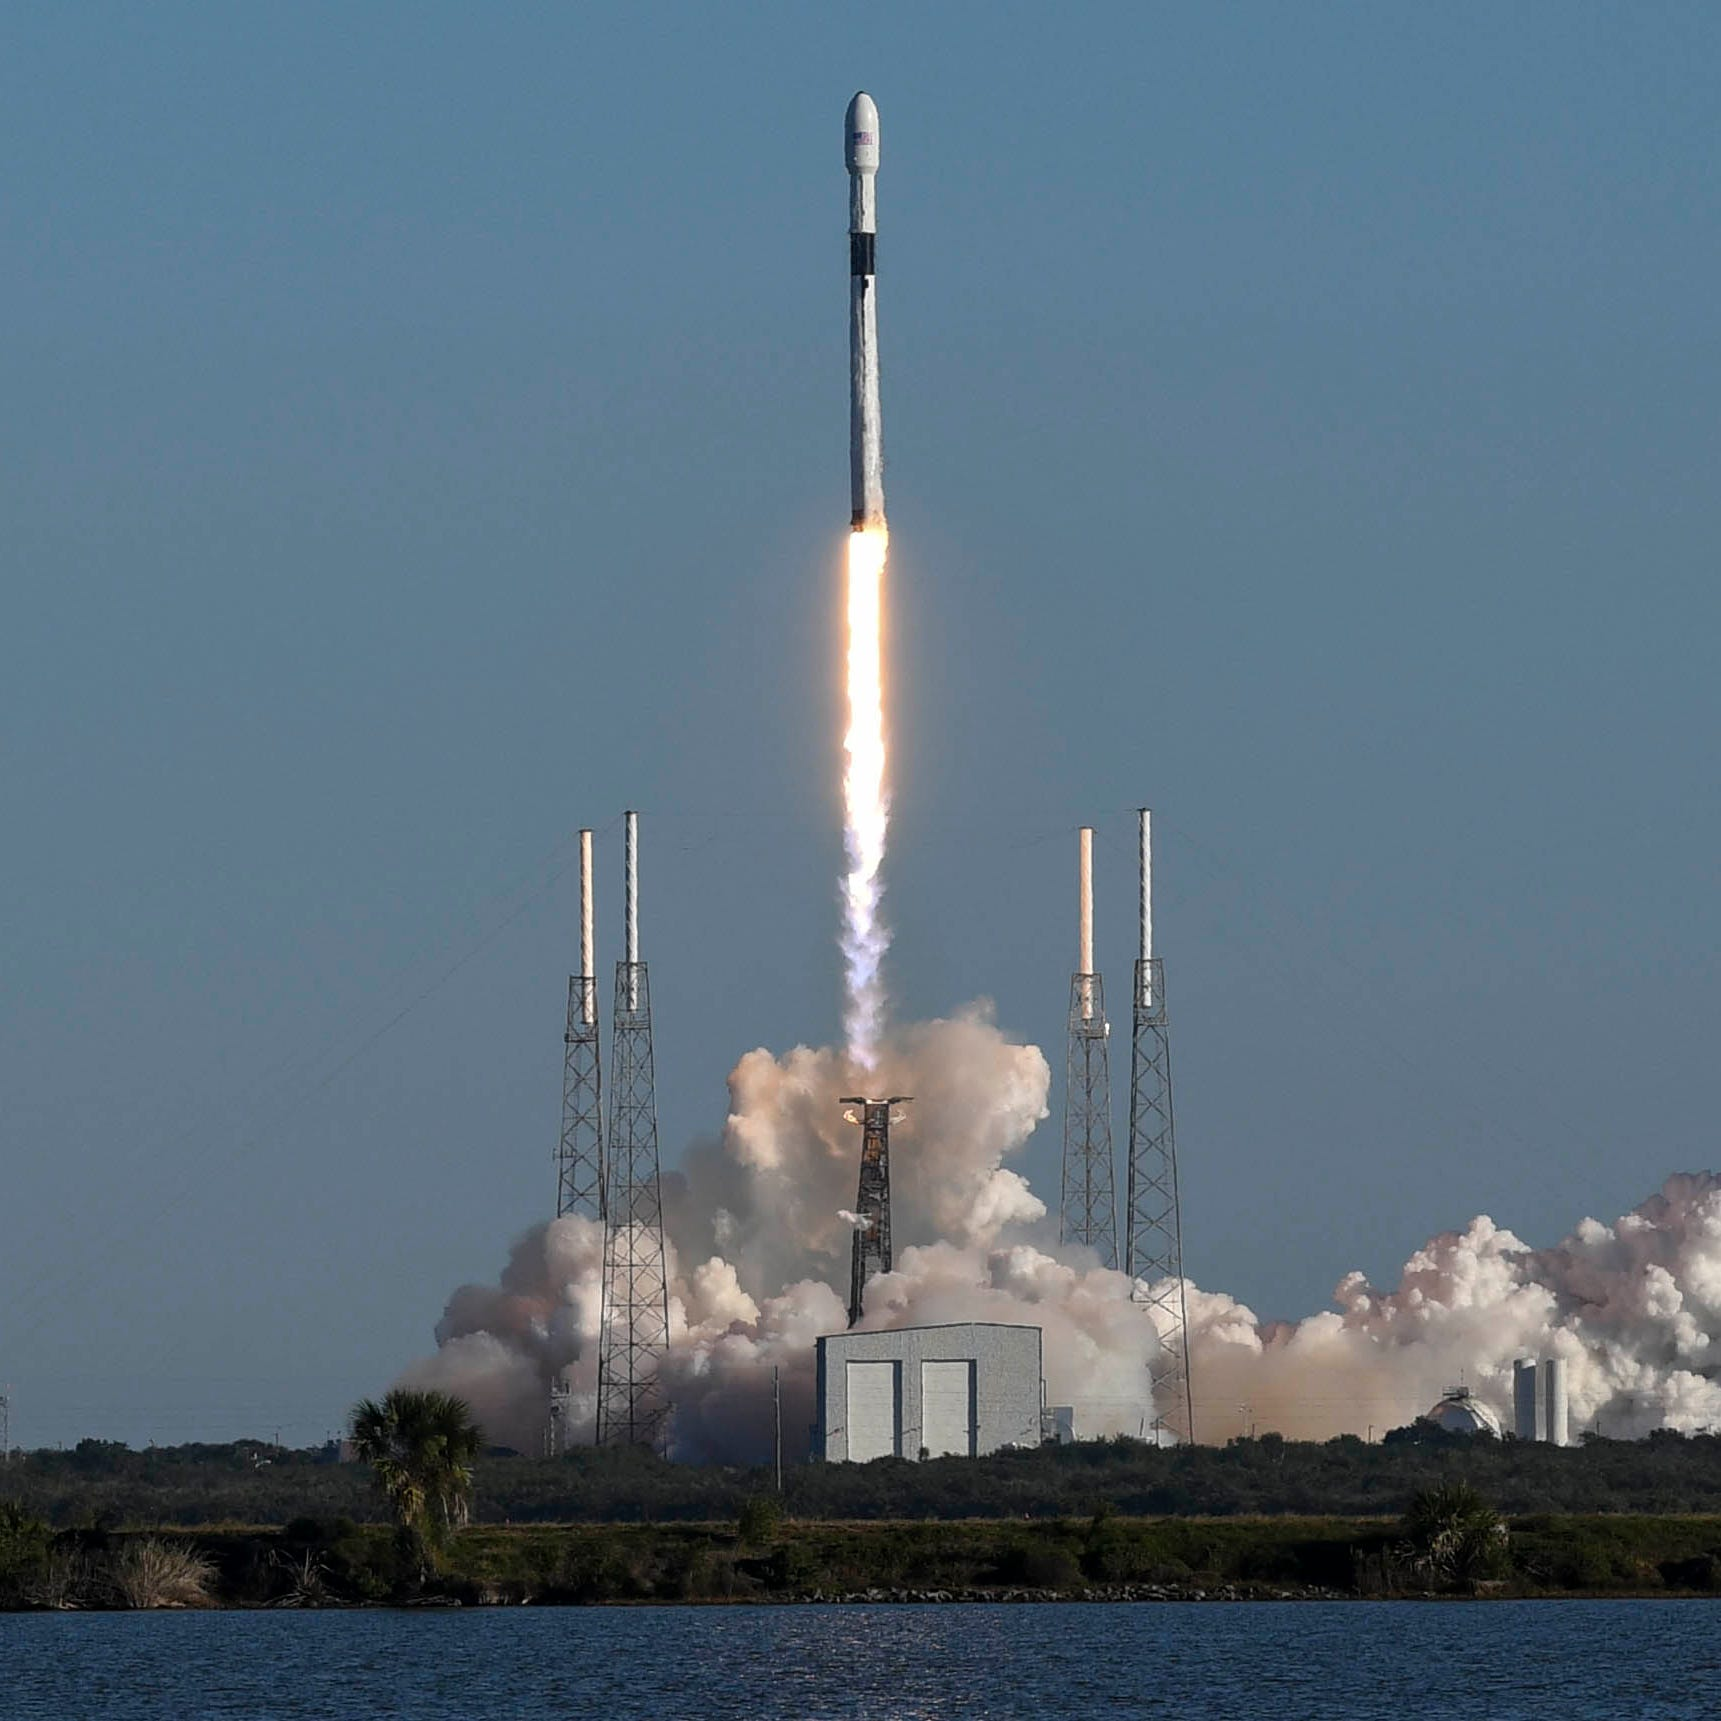 SpaceX opens new GPS era with launch of 'Vespucci' from Cape Canaveral